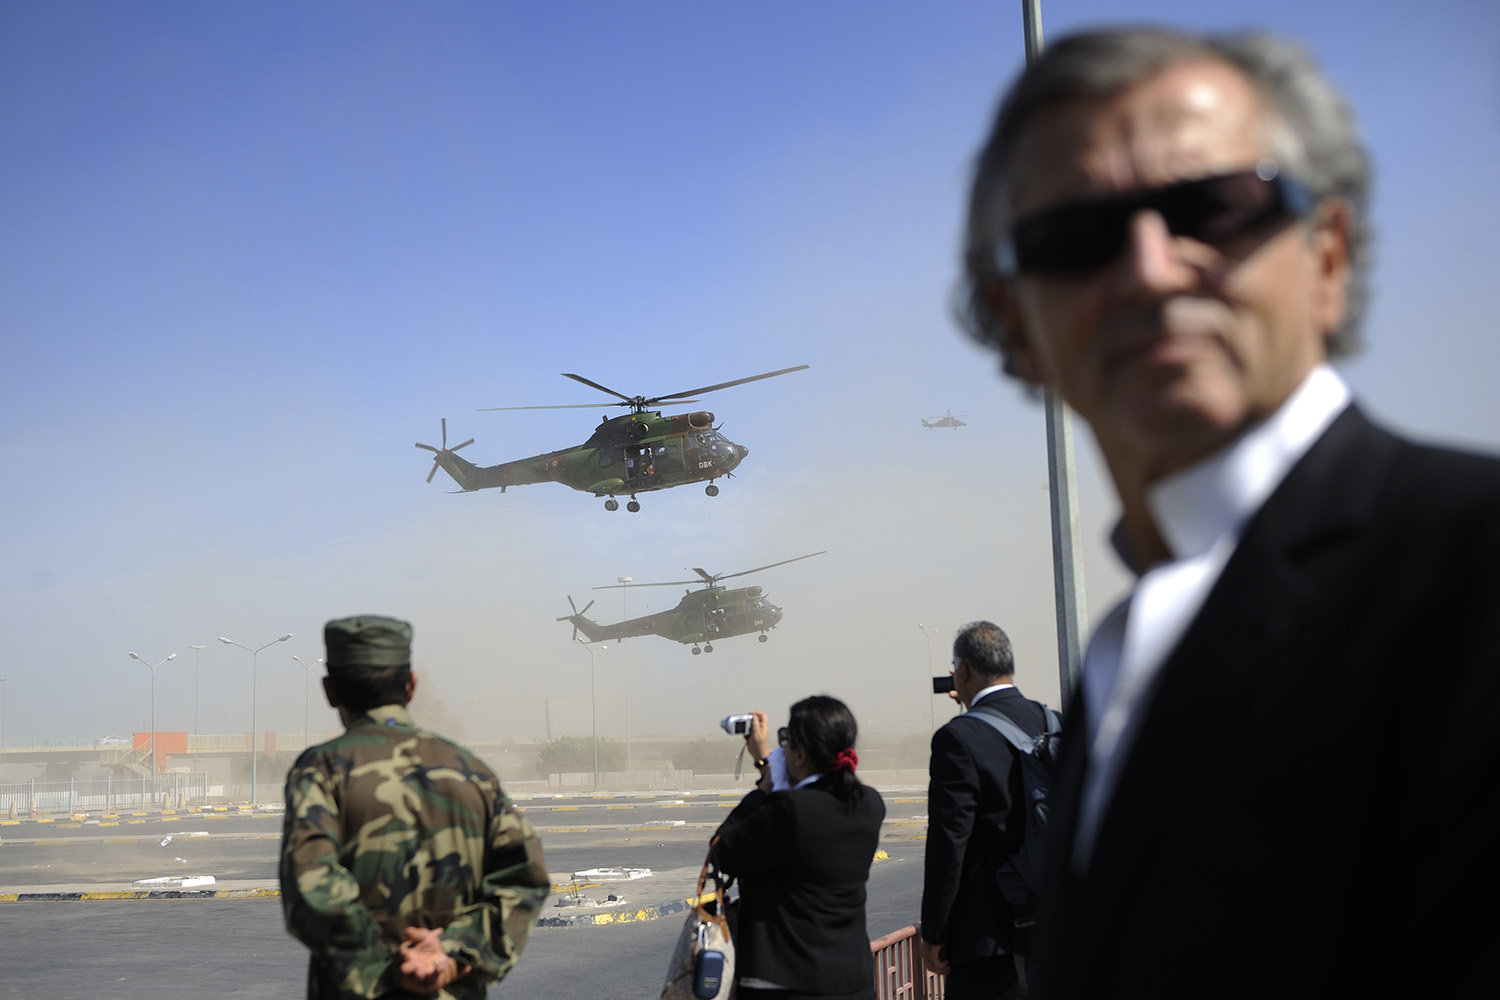 Bernard-Henri Levy with military helicopters in Libya in 2011.